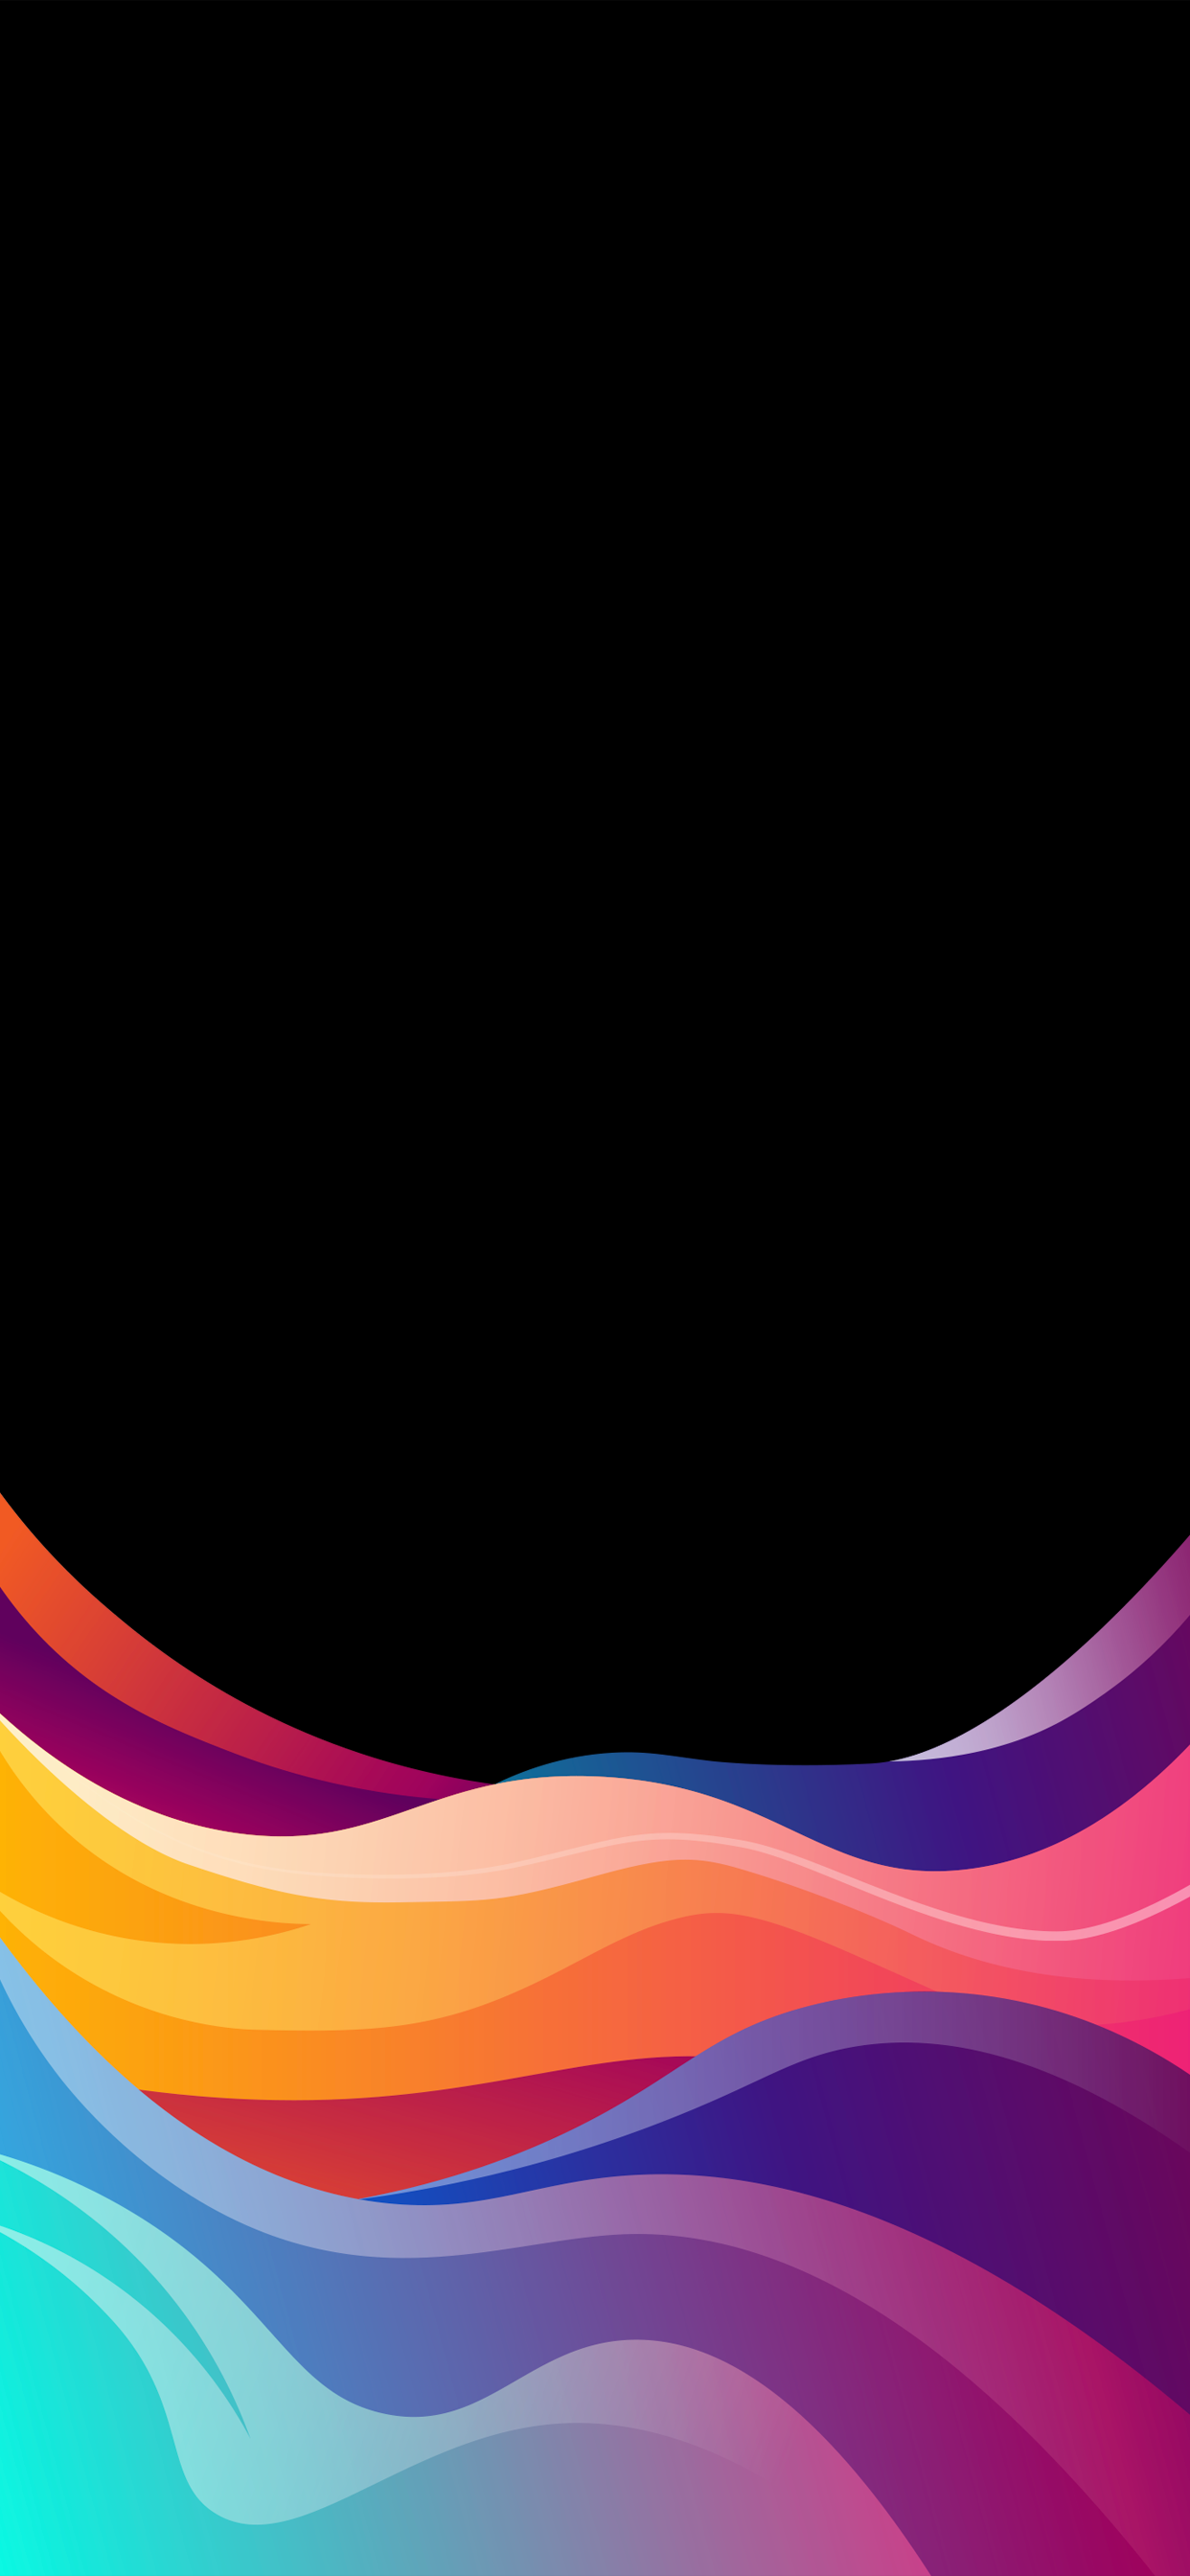 5 Awesome Iphone 8 Iphone Xs Or Iphone Xr Wallpapers 59 Iphone Homescreen Wallpaper Art Wallpaper Iphone Iphone Wallpaper Modern